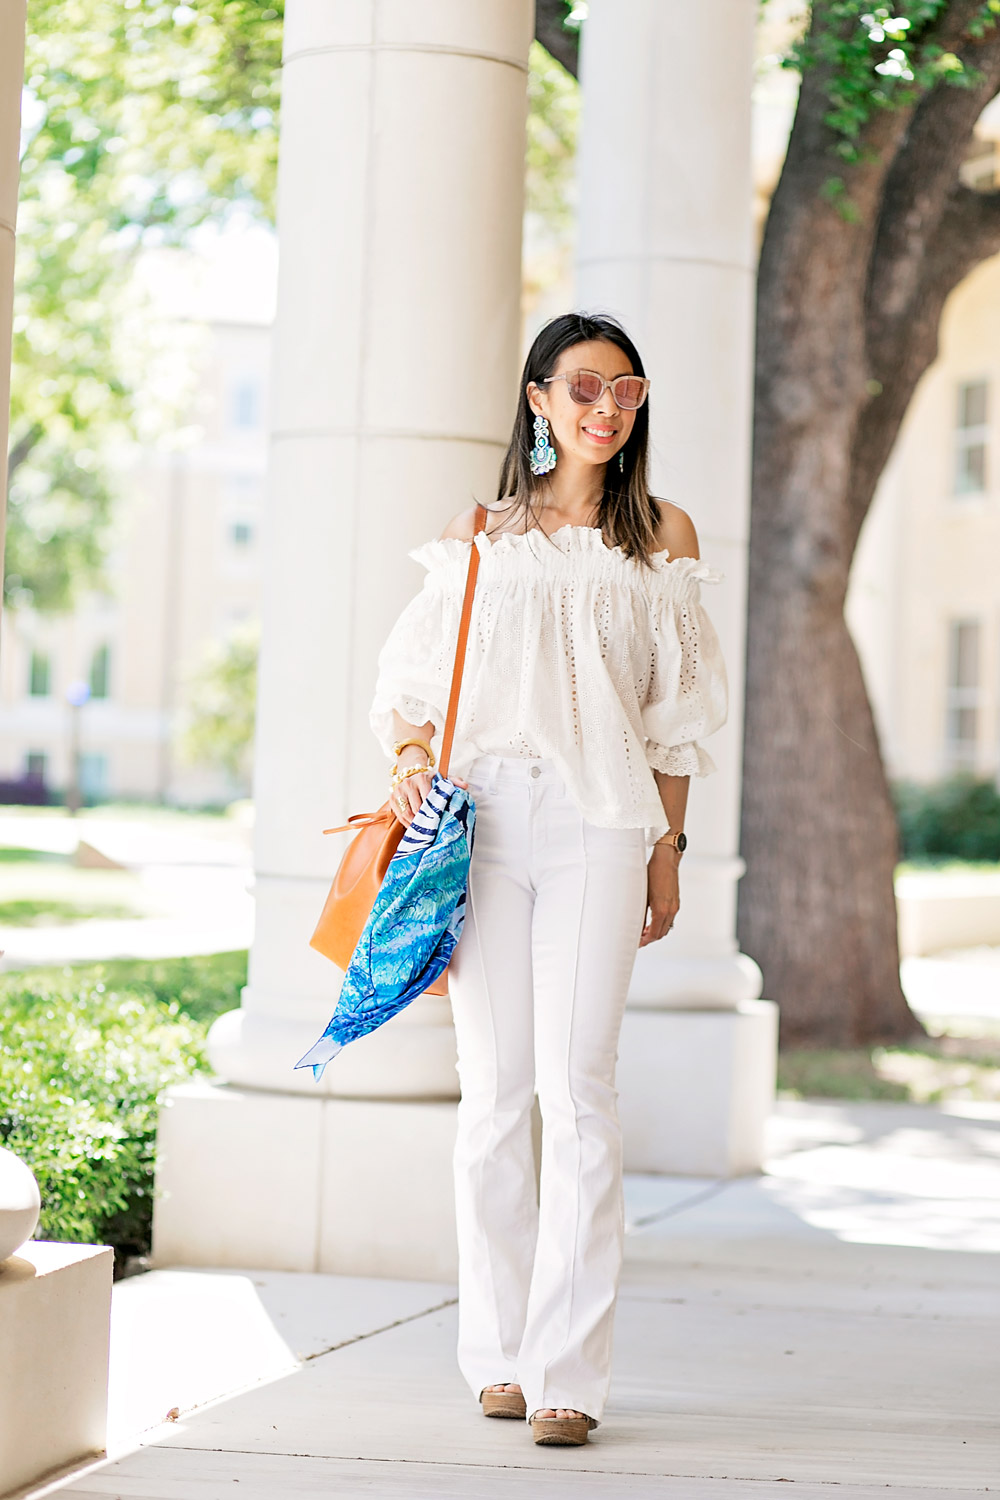 endless rose eyelet off the shoulder top with Alejandra Aspillaga statement earrings and mansur gavriel bucket bag, spring all white outfit idea